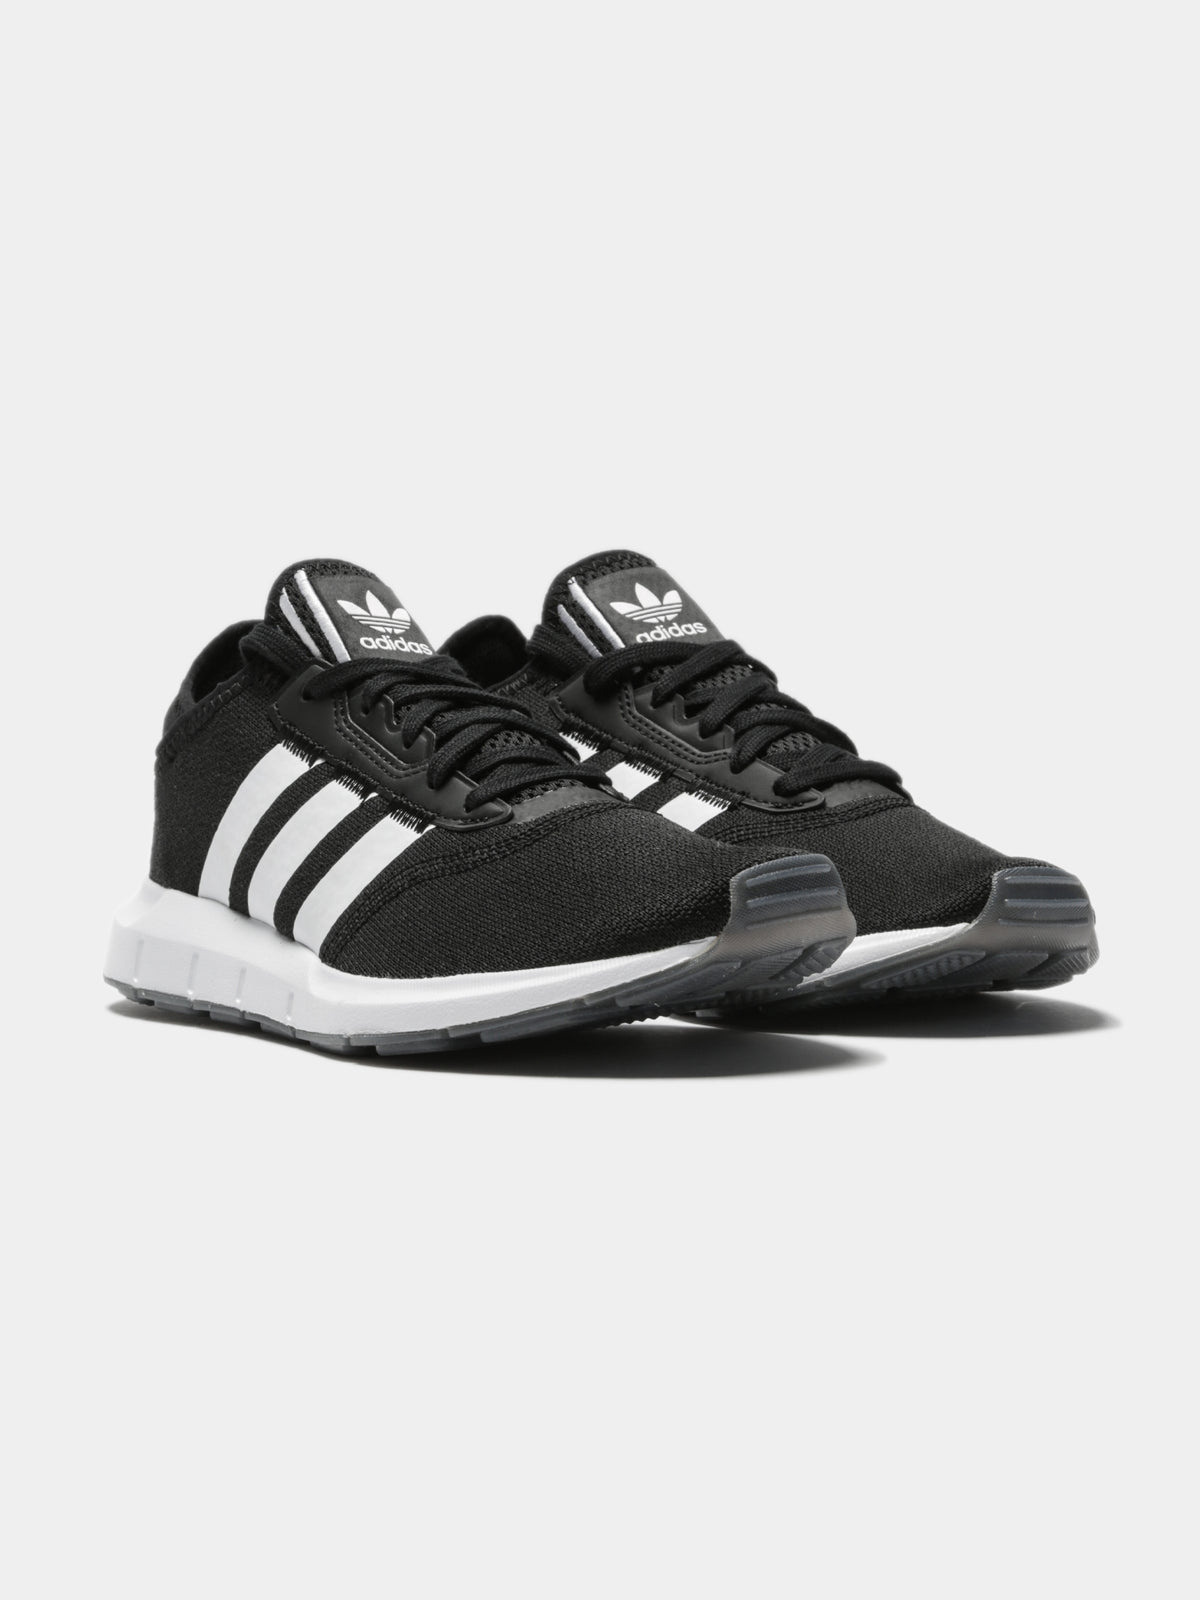 Womens Swift Run X in Black & White